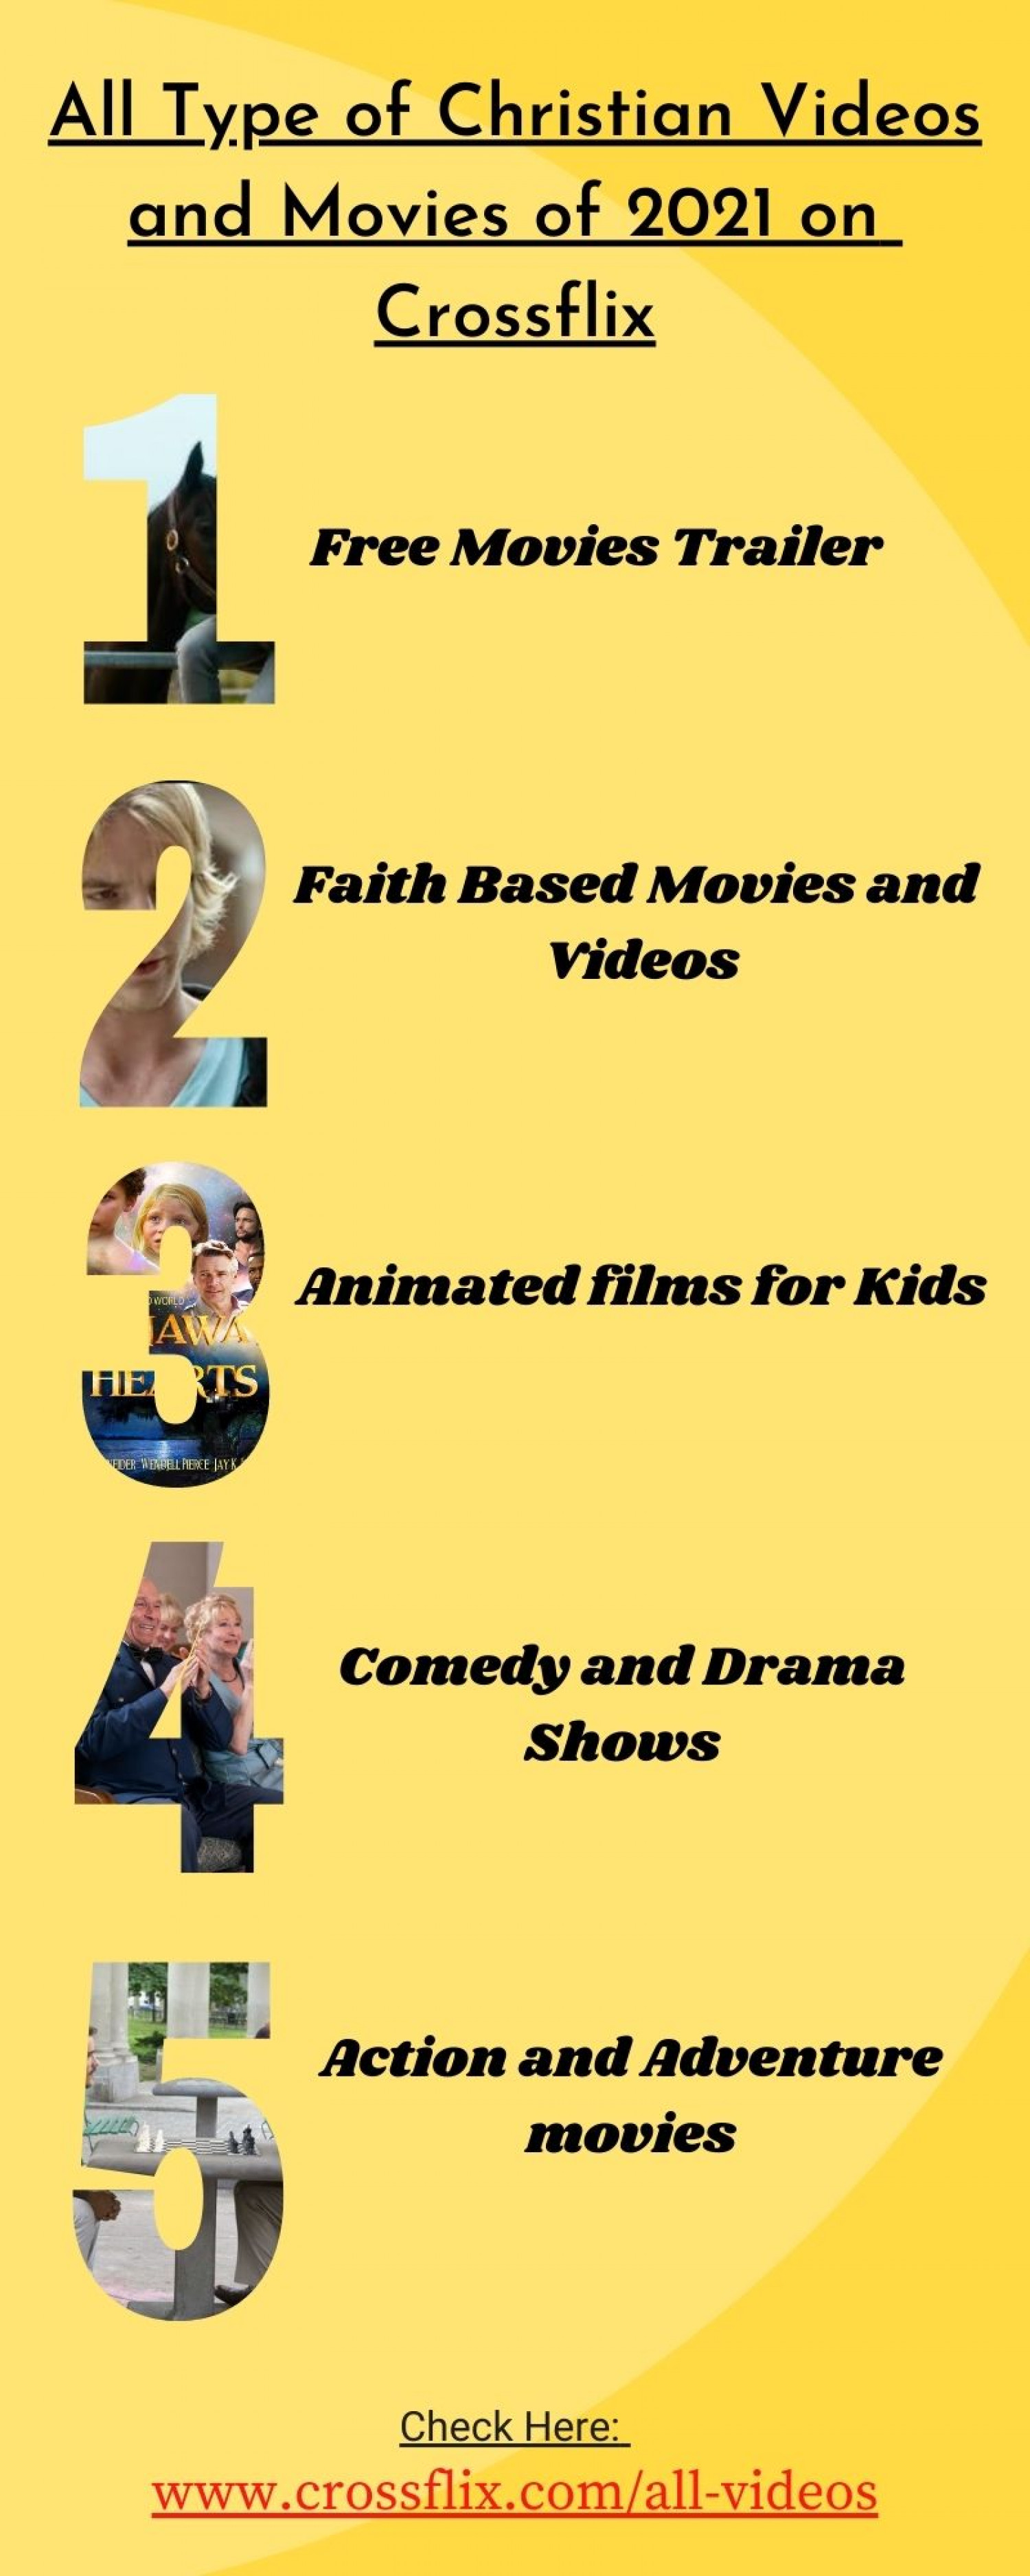 All Christian Movies, Films and Videos Online in 2021 Infographic